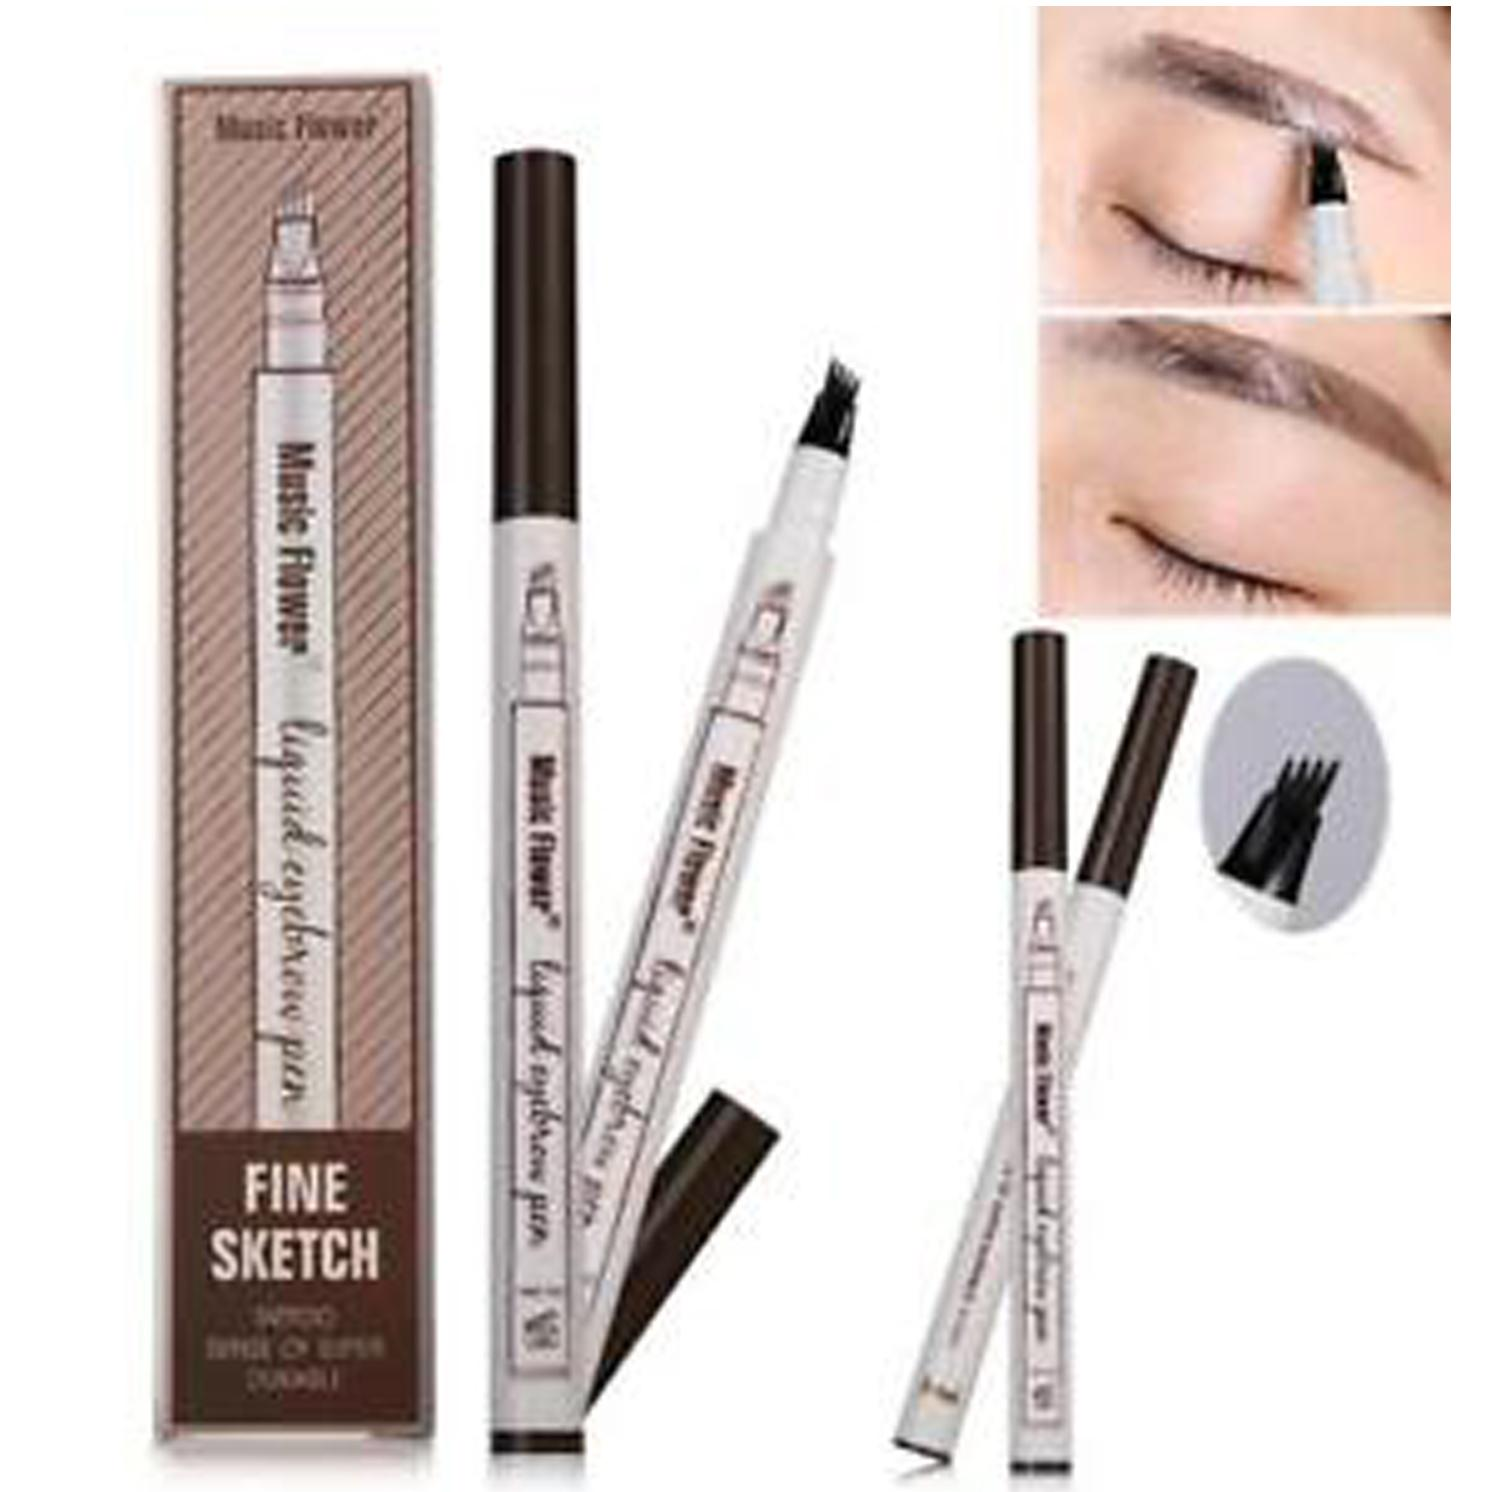 Music Flower Brand Makeup Fine Sketch Liquid Eyebrow Pen Waterproof Philippines